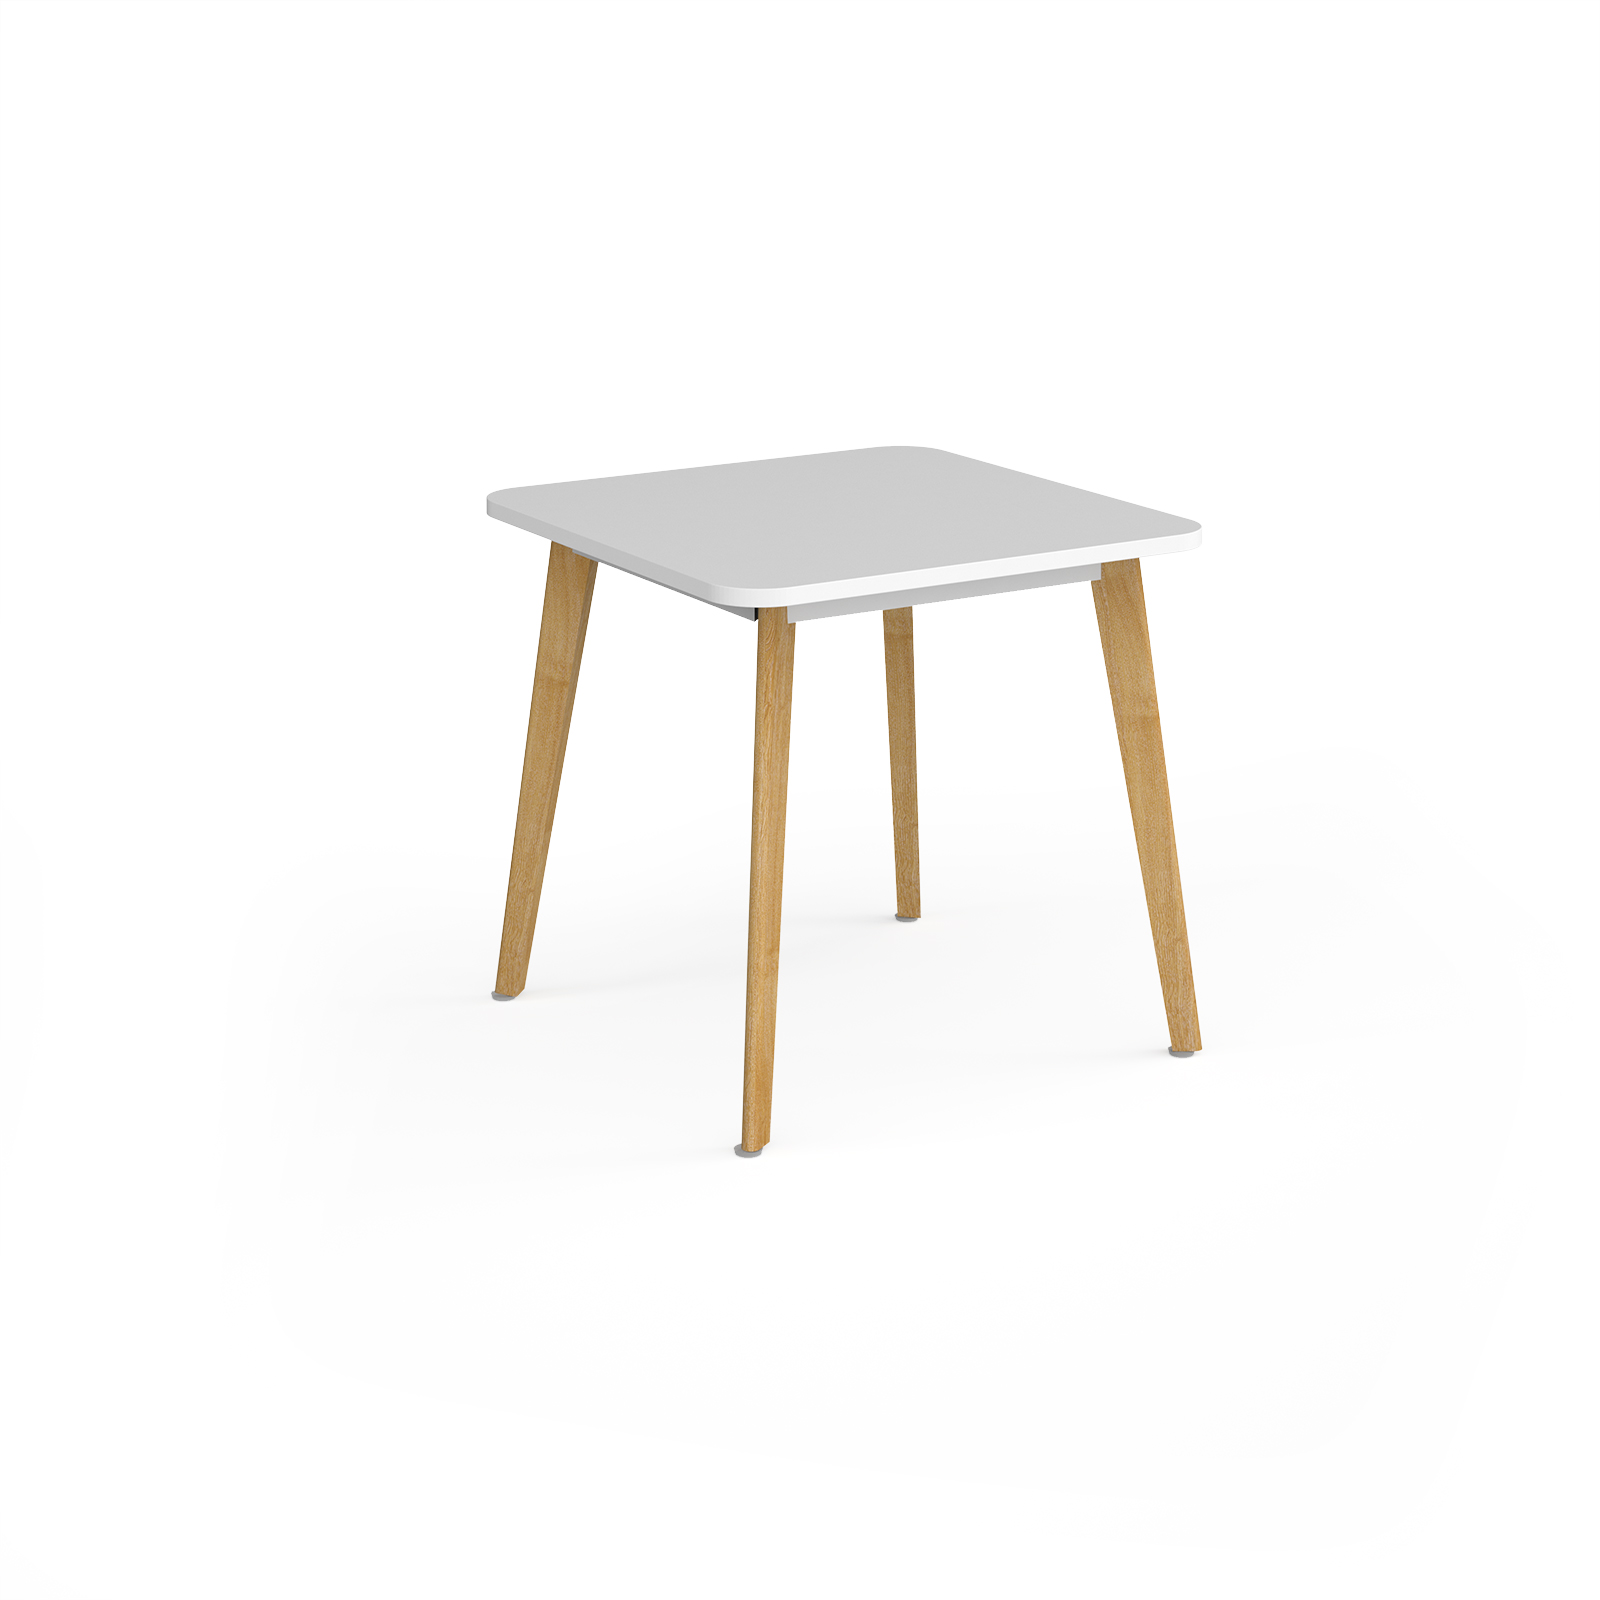 Canteen / Dining Como square dining table with 4 oak legs 800mm - white